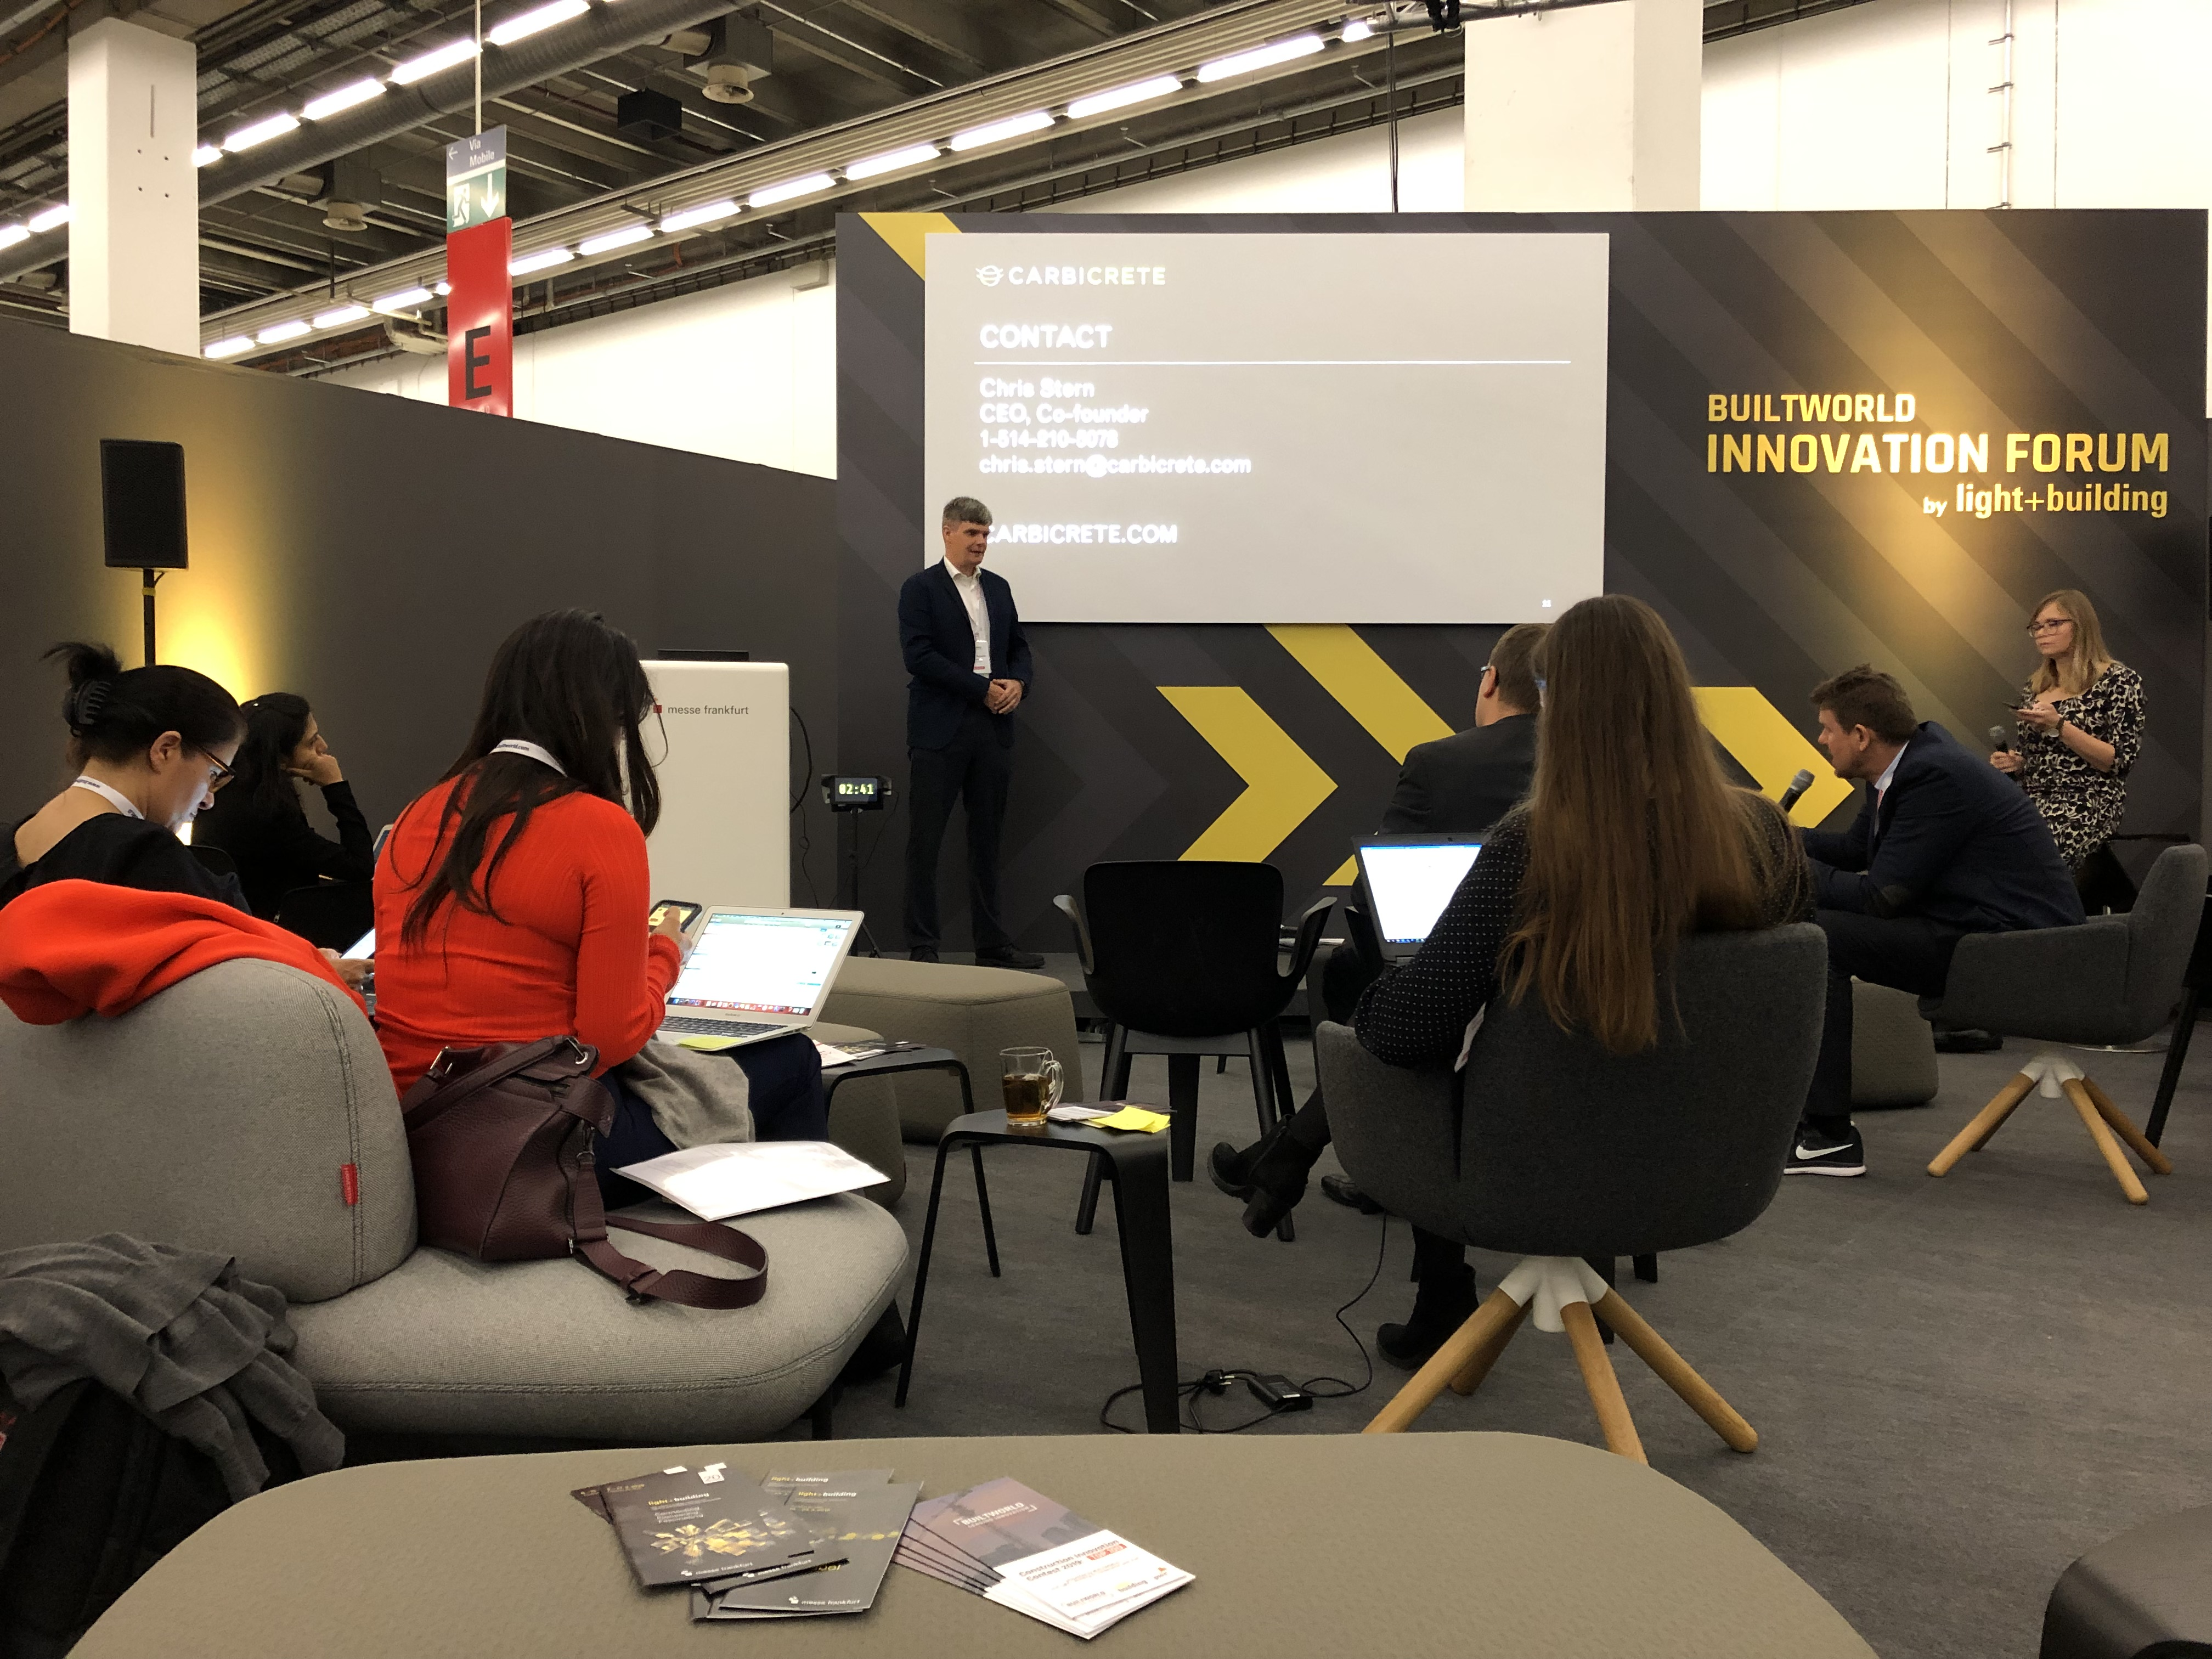 Builtworld Construction Innovation Contest: The two-day prepitch in hall 9.0 of Messe Frankfurt brought together jurors from the best-known established companies in the real estate and construction sectors as well as building technology.